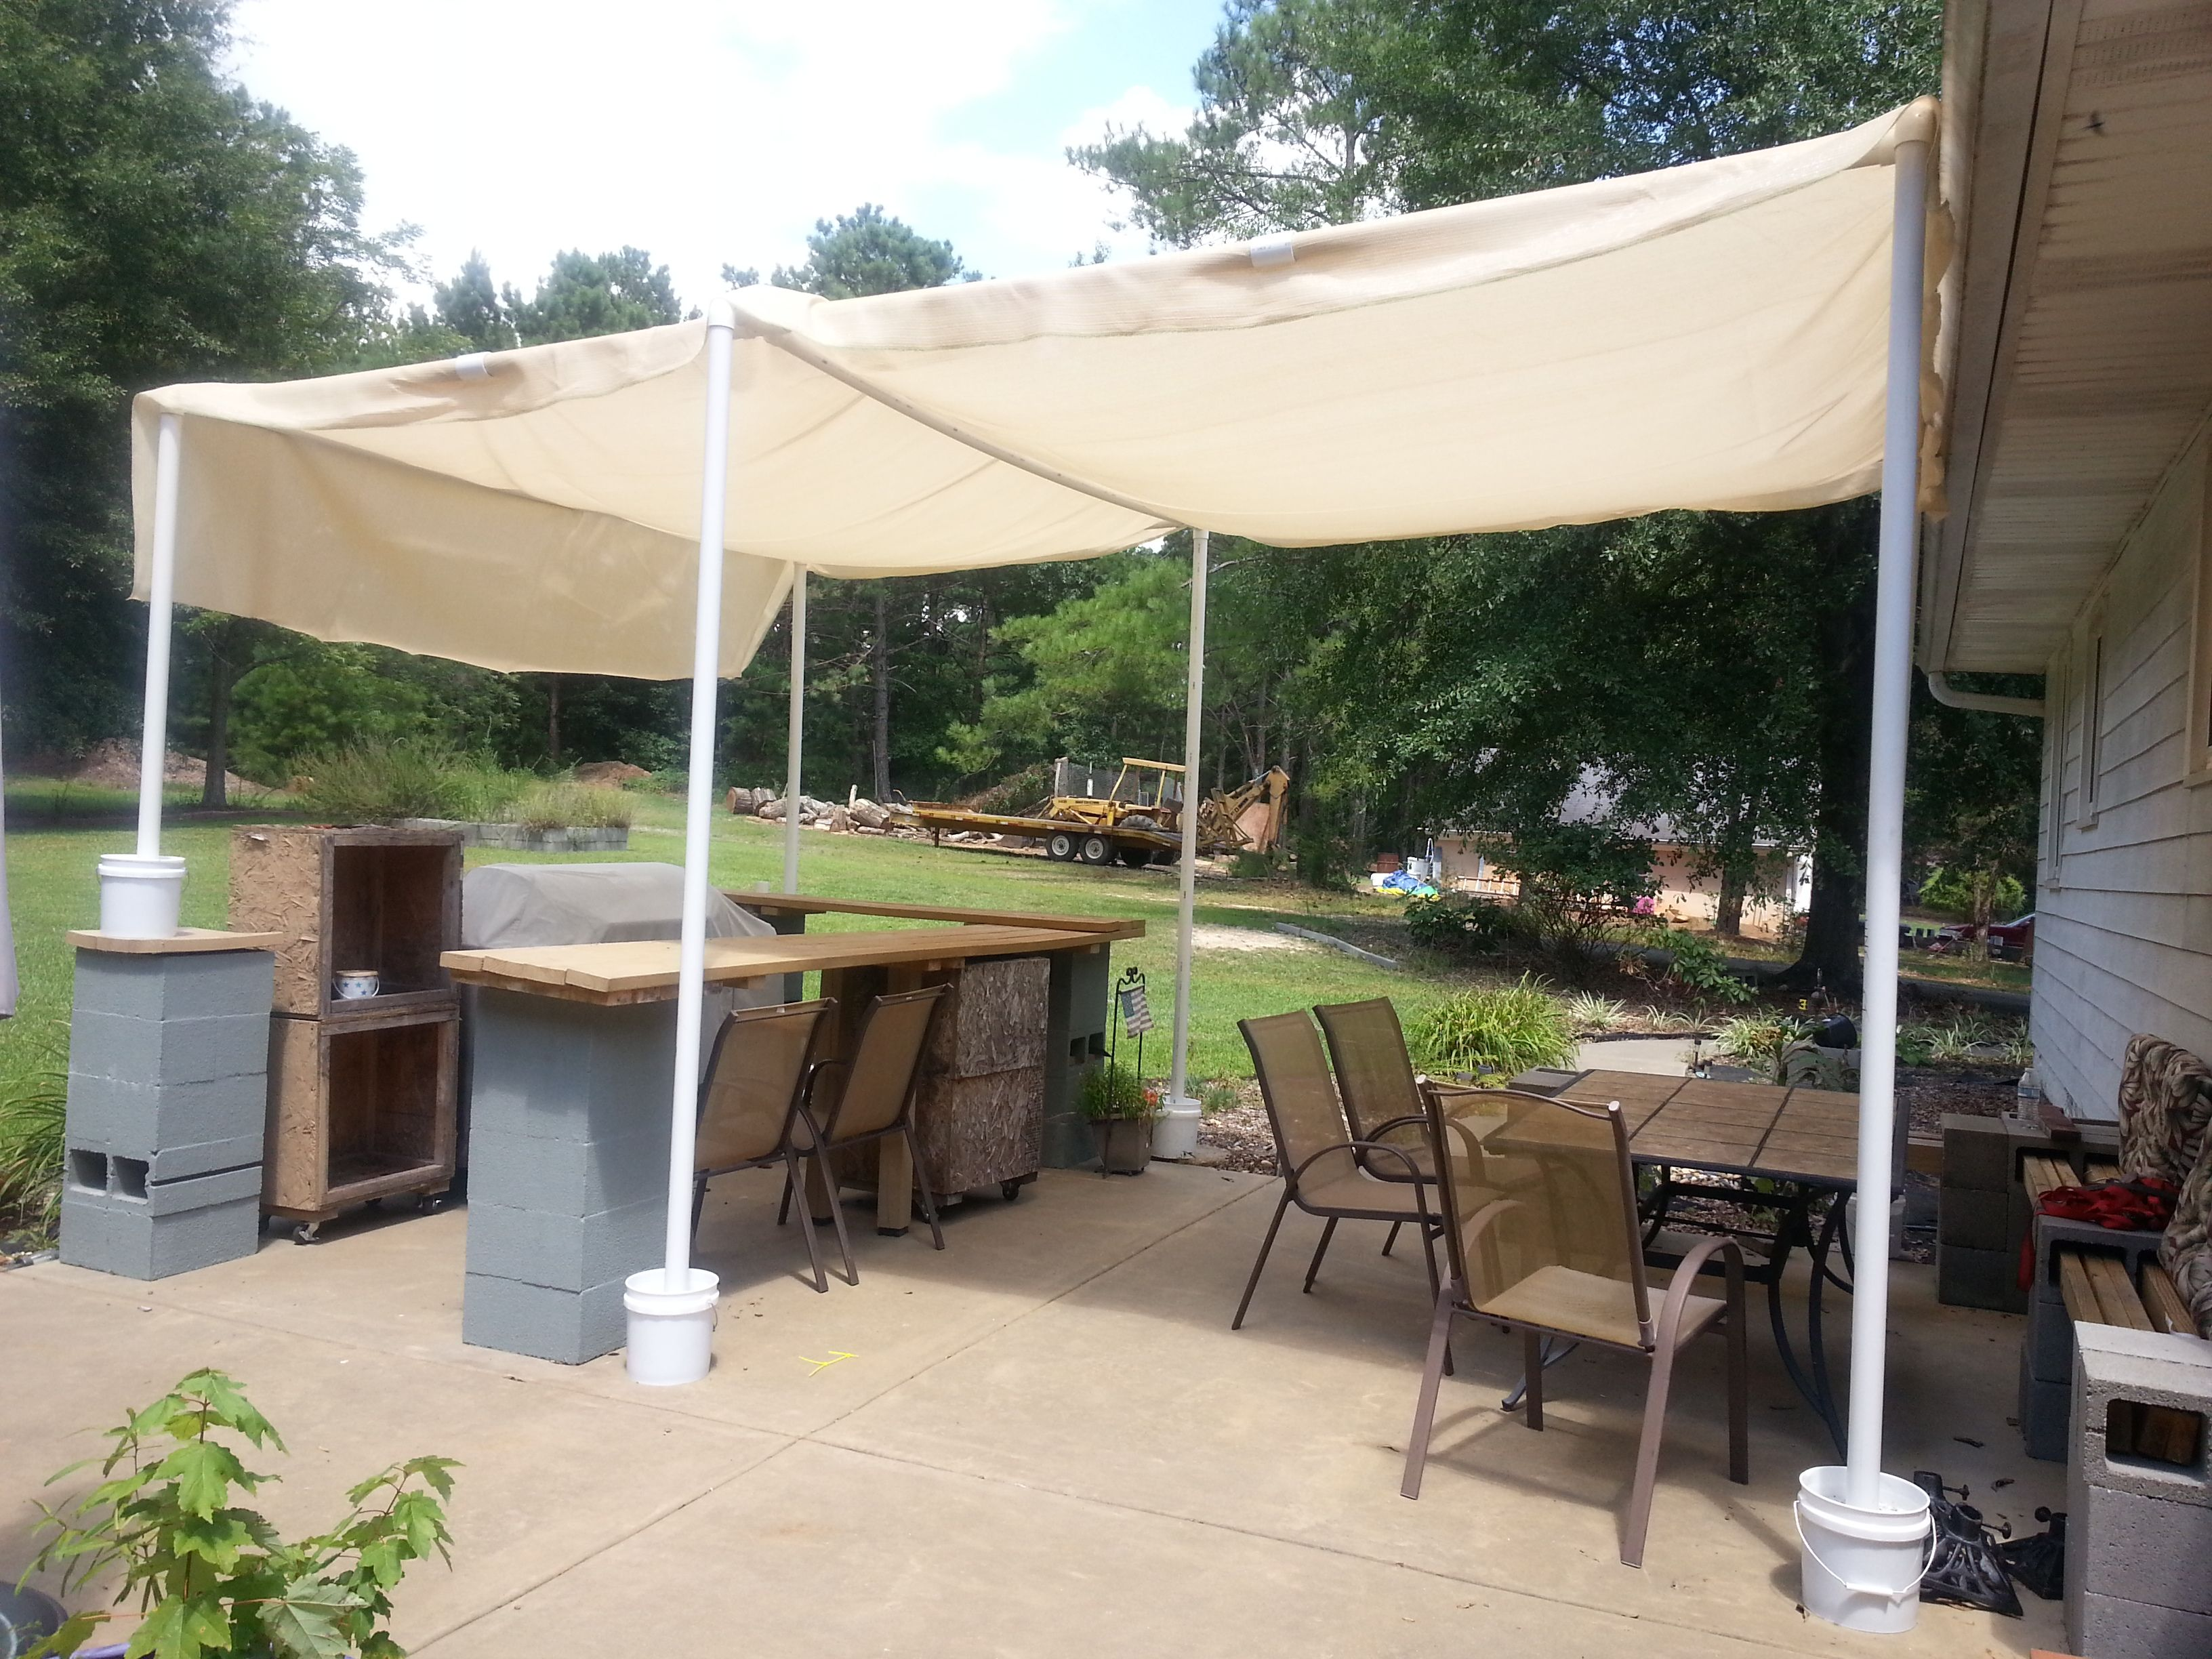 Made This Canopy To Cover The Bar Seating Area This